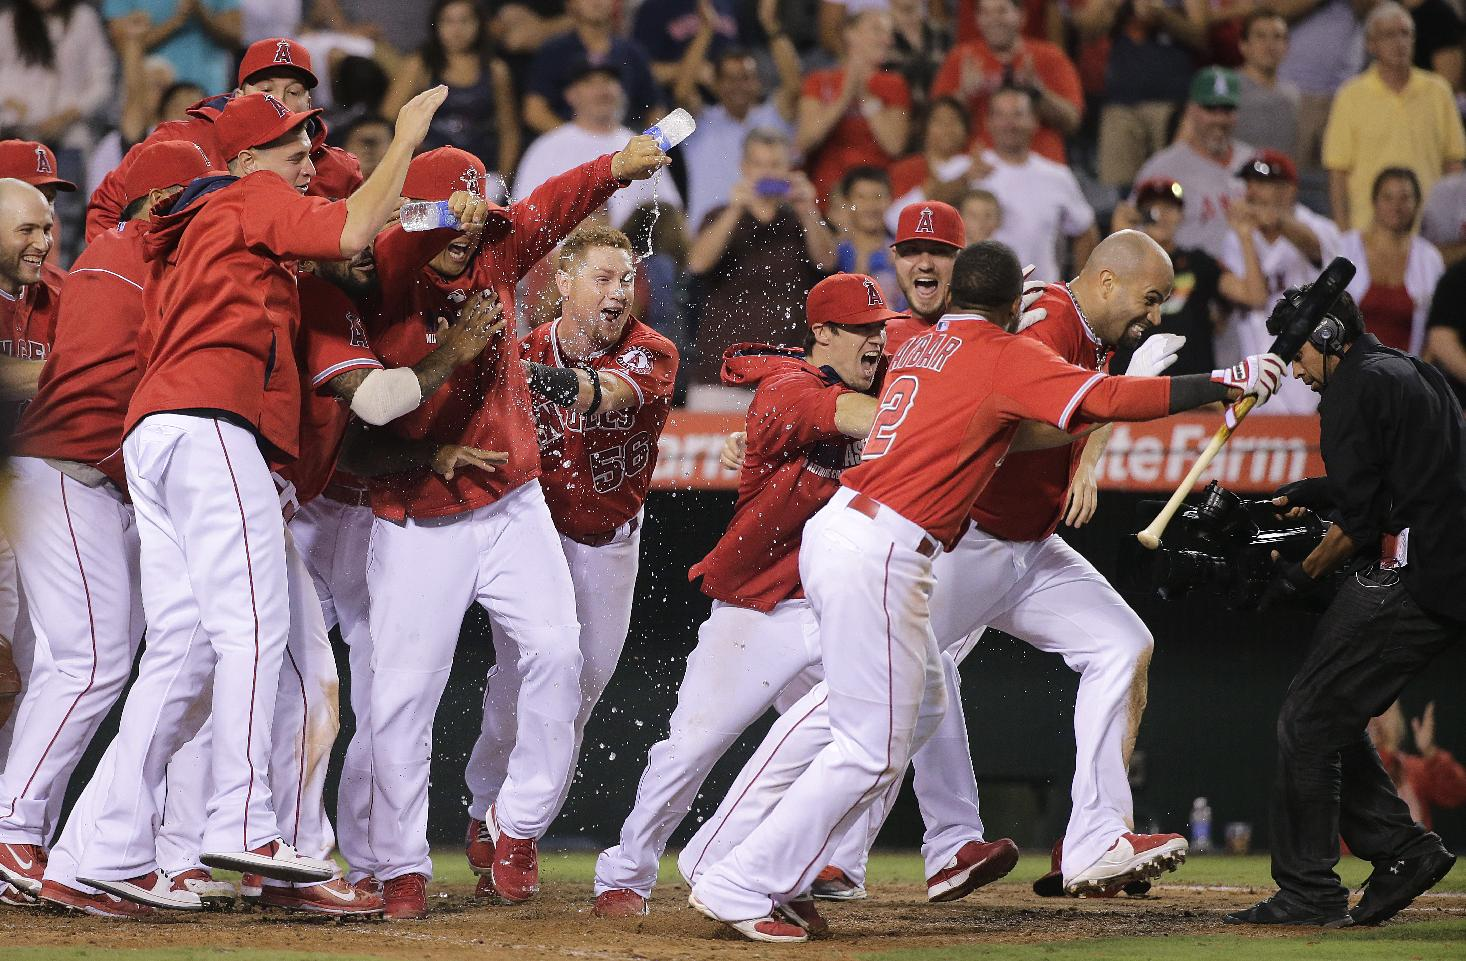 Albert Pujols ends epic 19-inning game with walk-off home run